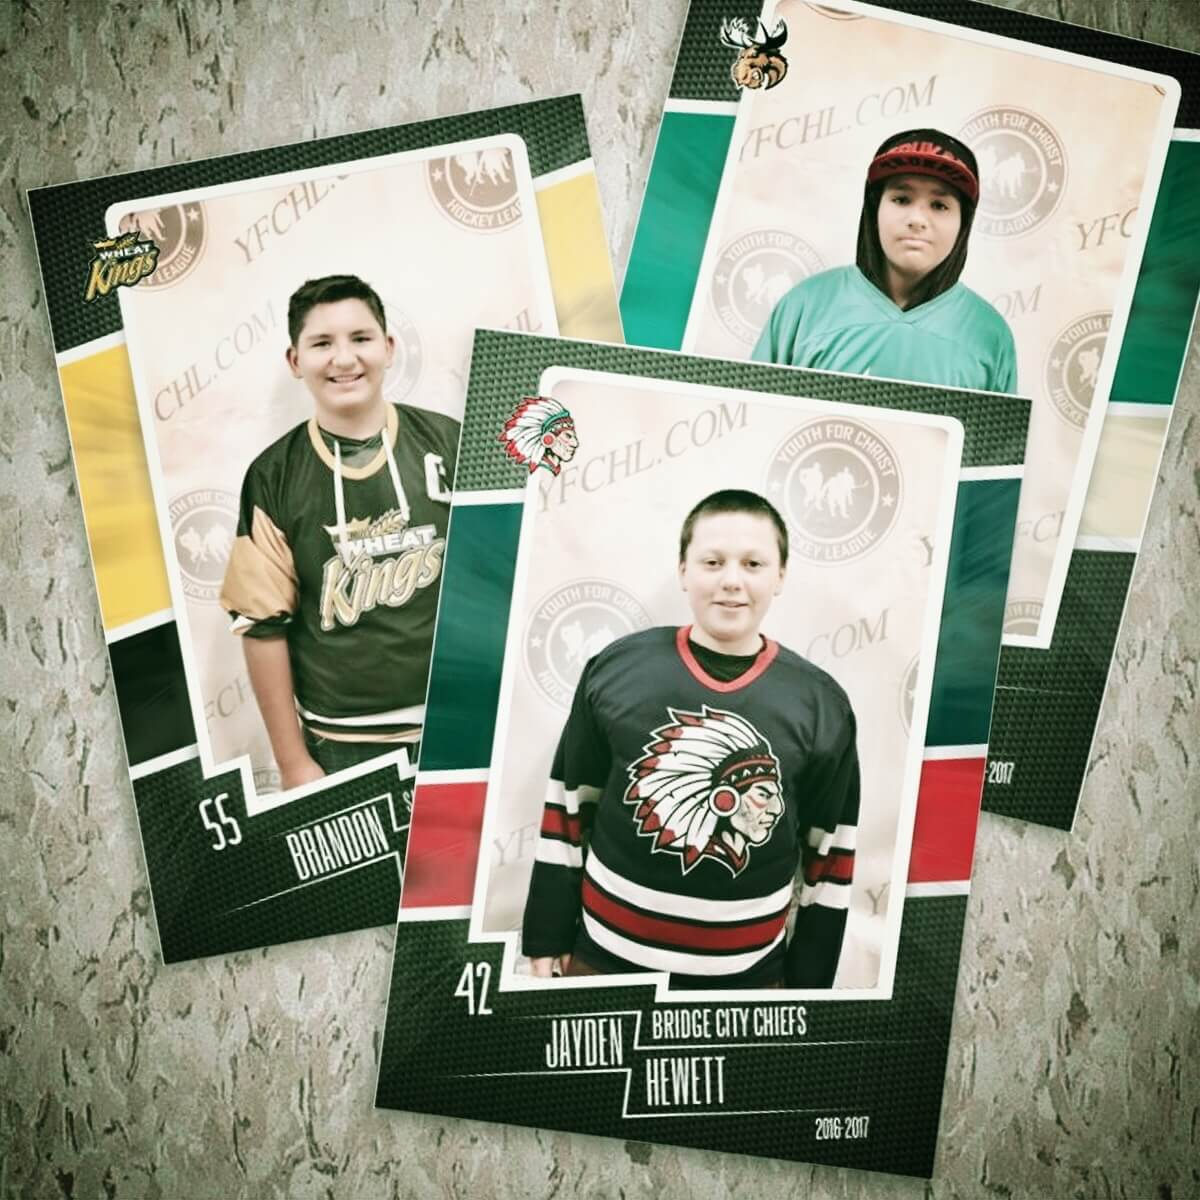 Your gift of $25 will purchase personalized hockey cards for five kids